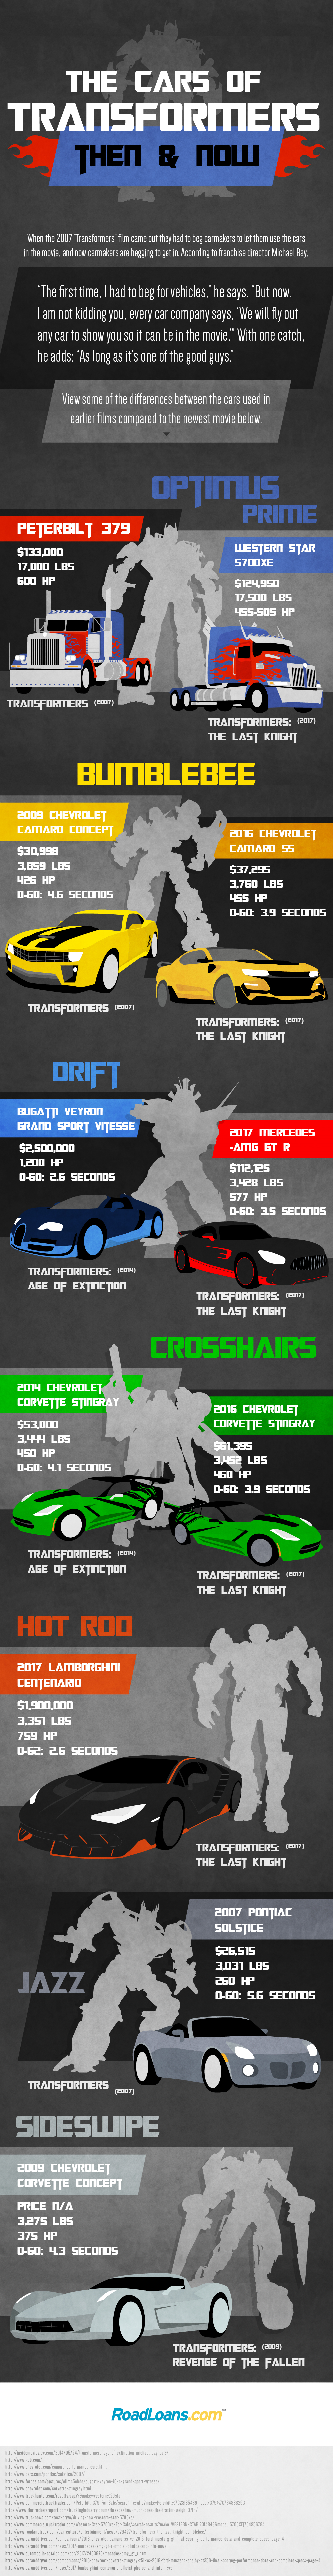 Roadloans Bad Credit Auto Loans >> The Cars of Transformers: Then and Now | RoadLoans